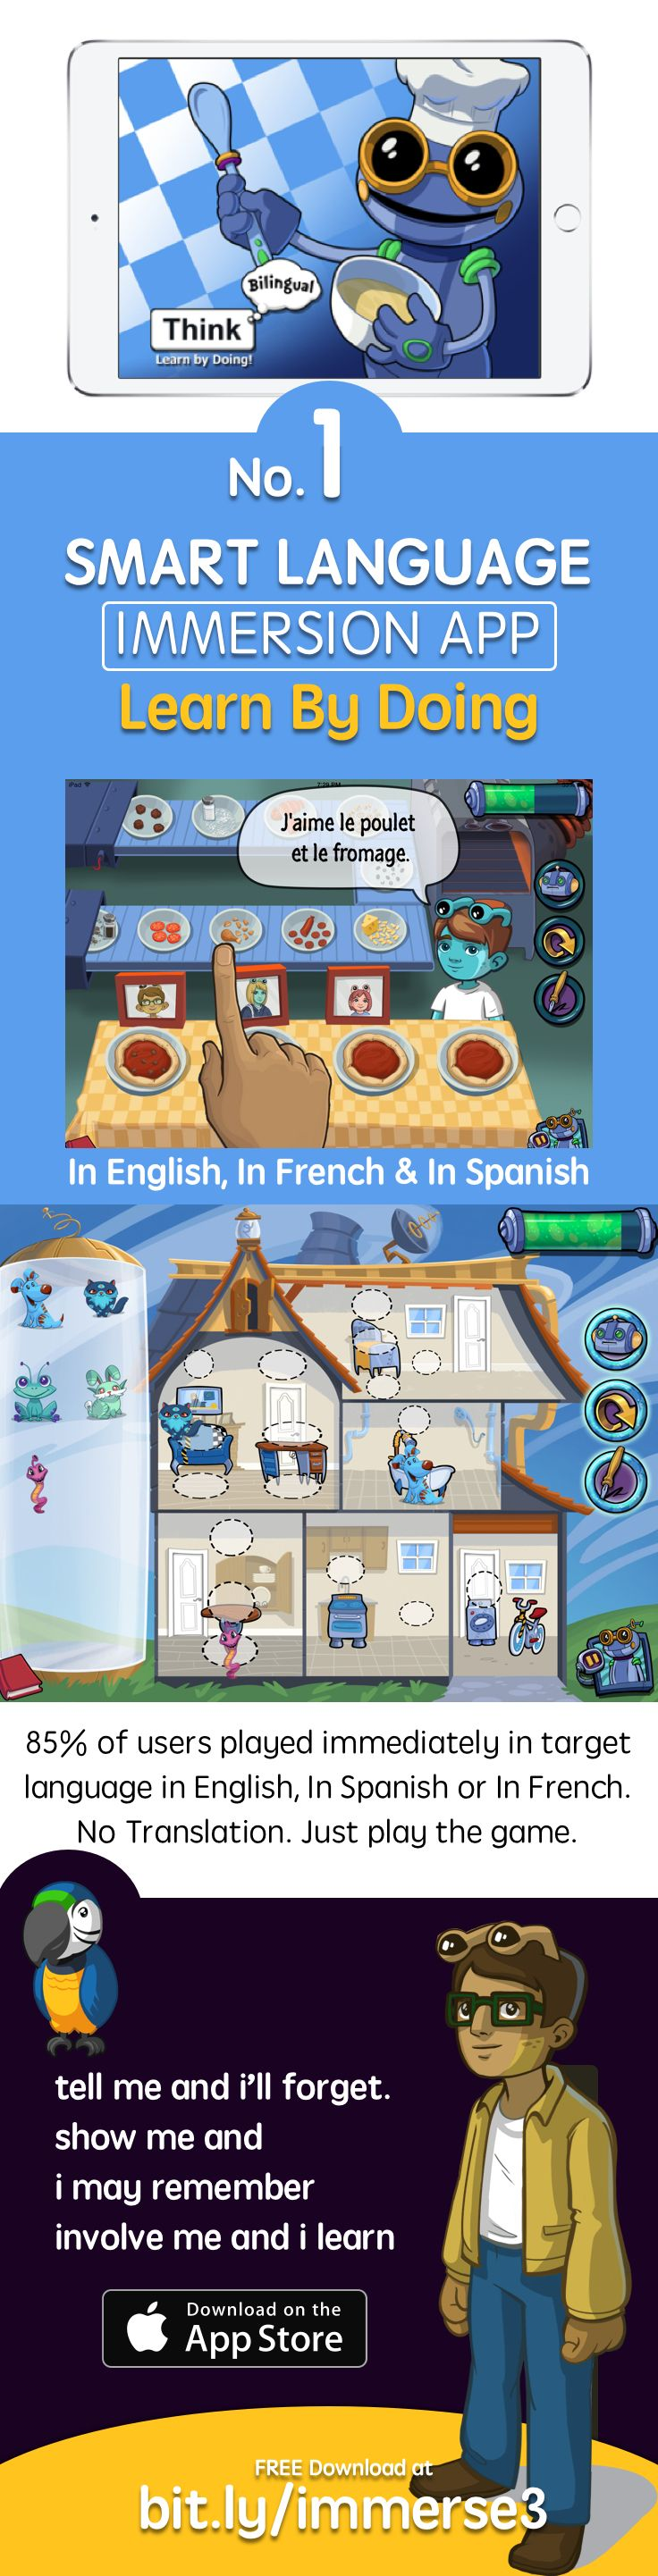 Learn Spanish using the first ever Immersion app https://itunes.apple.com/app/apple-store/id984967146?pt=1948807&ct=iifree7&mt=8